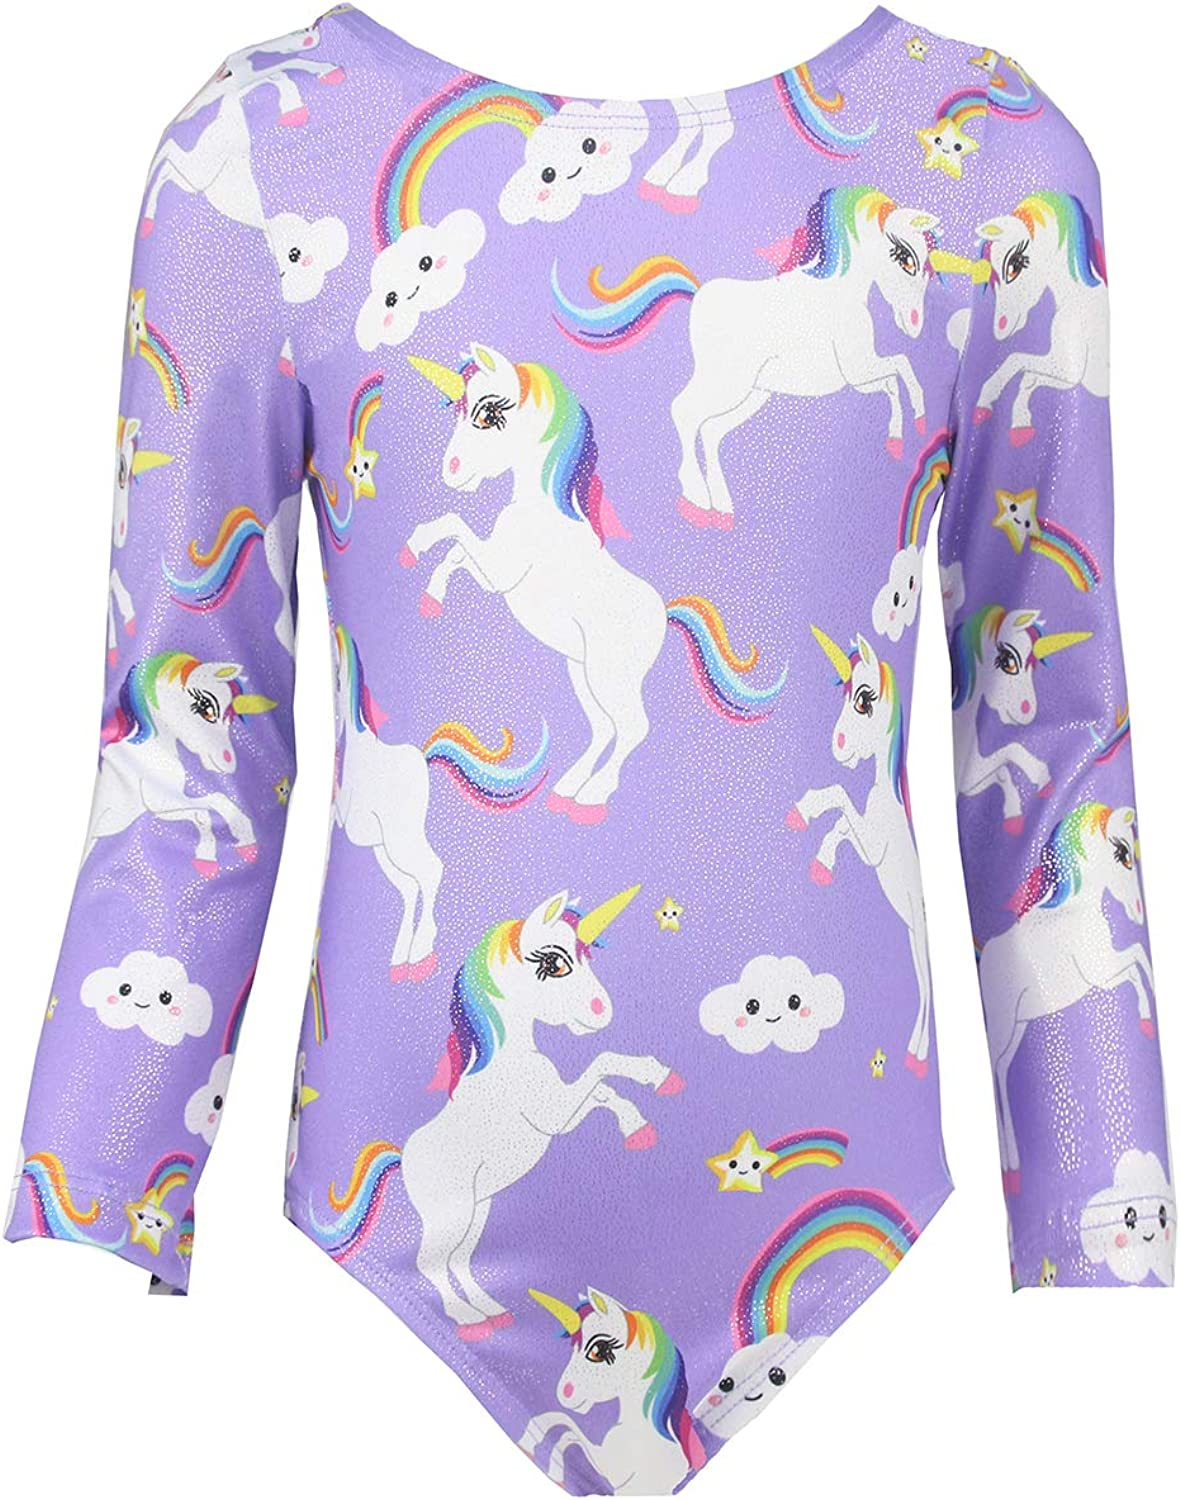 Midout Girls Long Sleeve Gymnastics Leotards Sparkly Unicorn Dancewear Activewear for Kids 29T Quick Dry